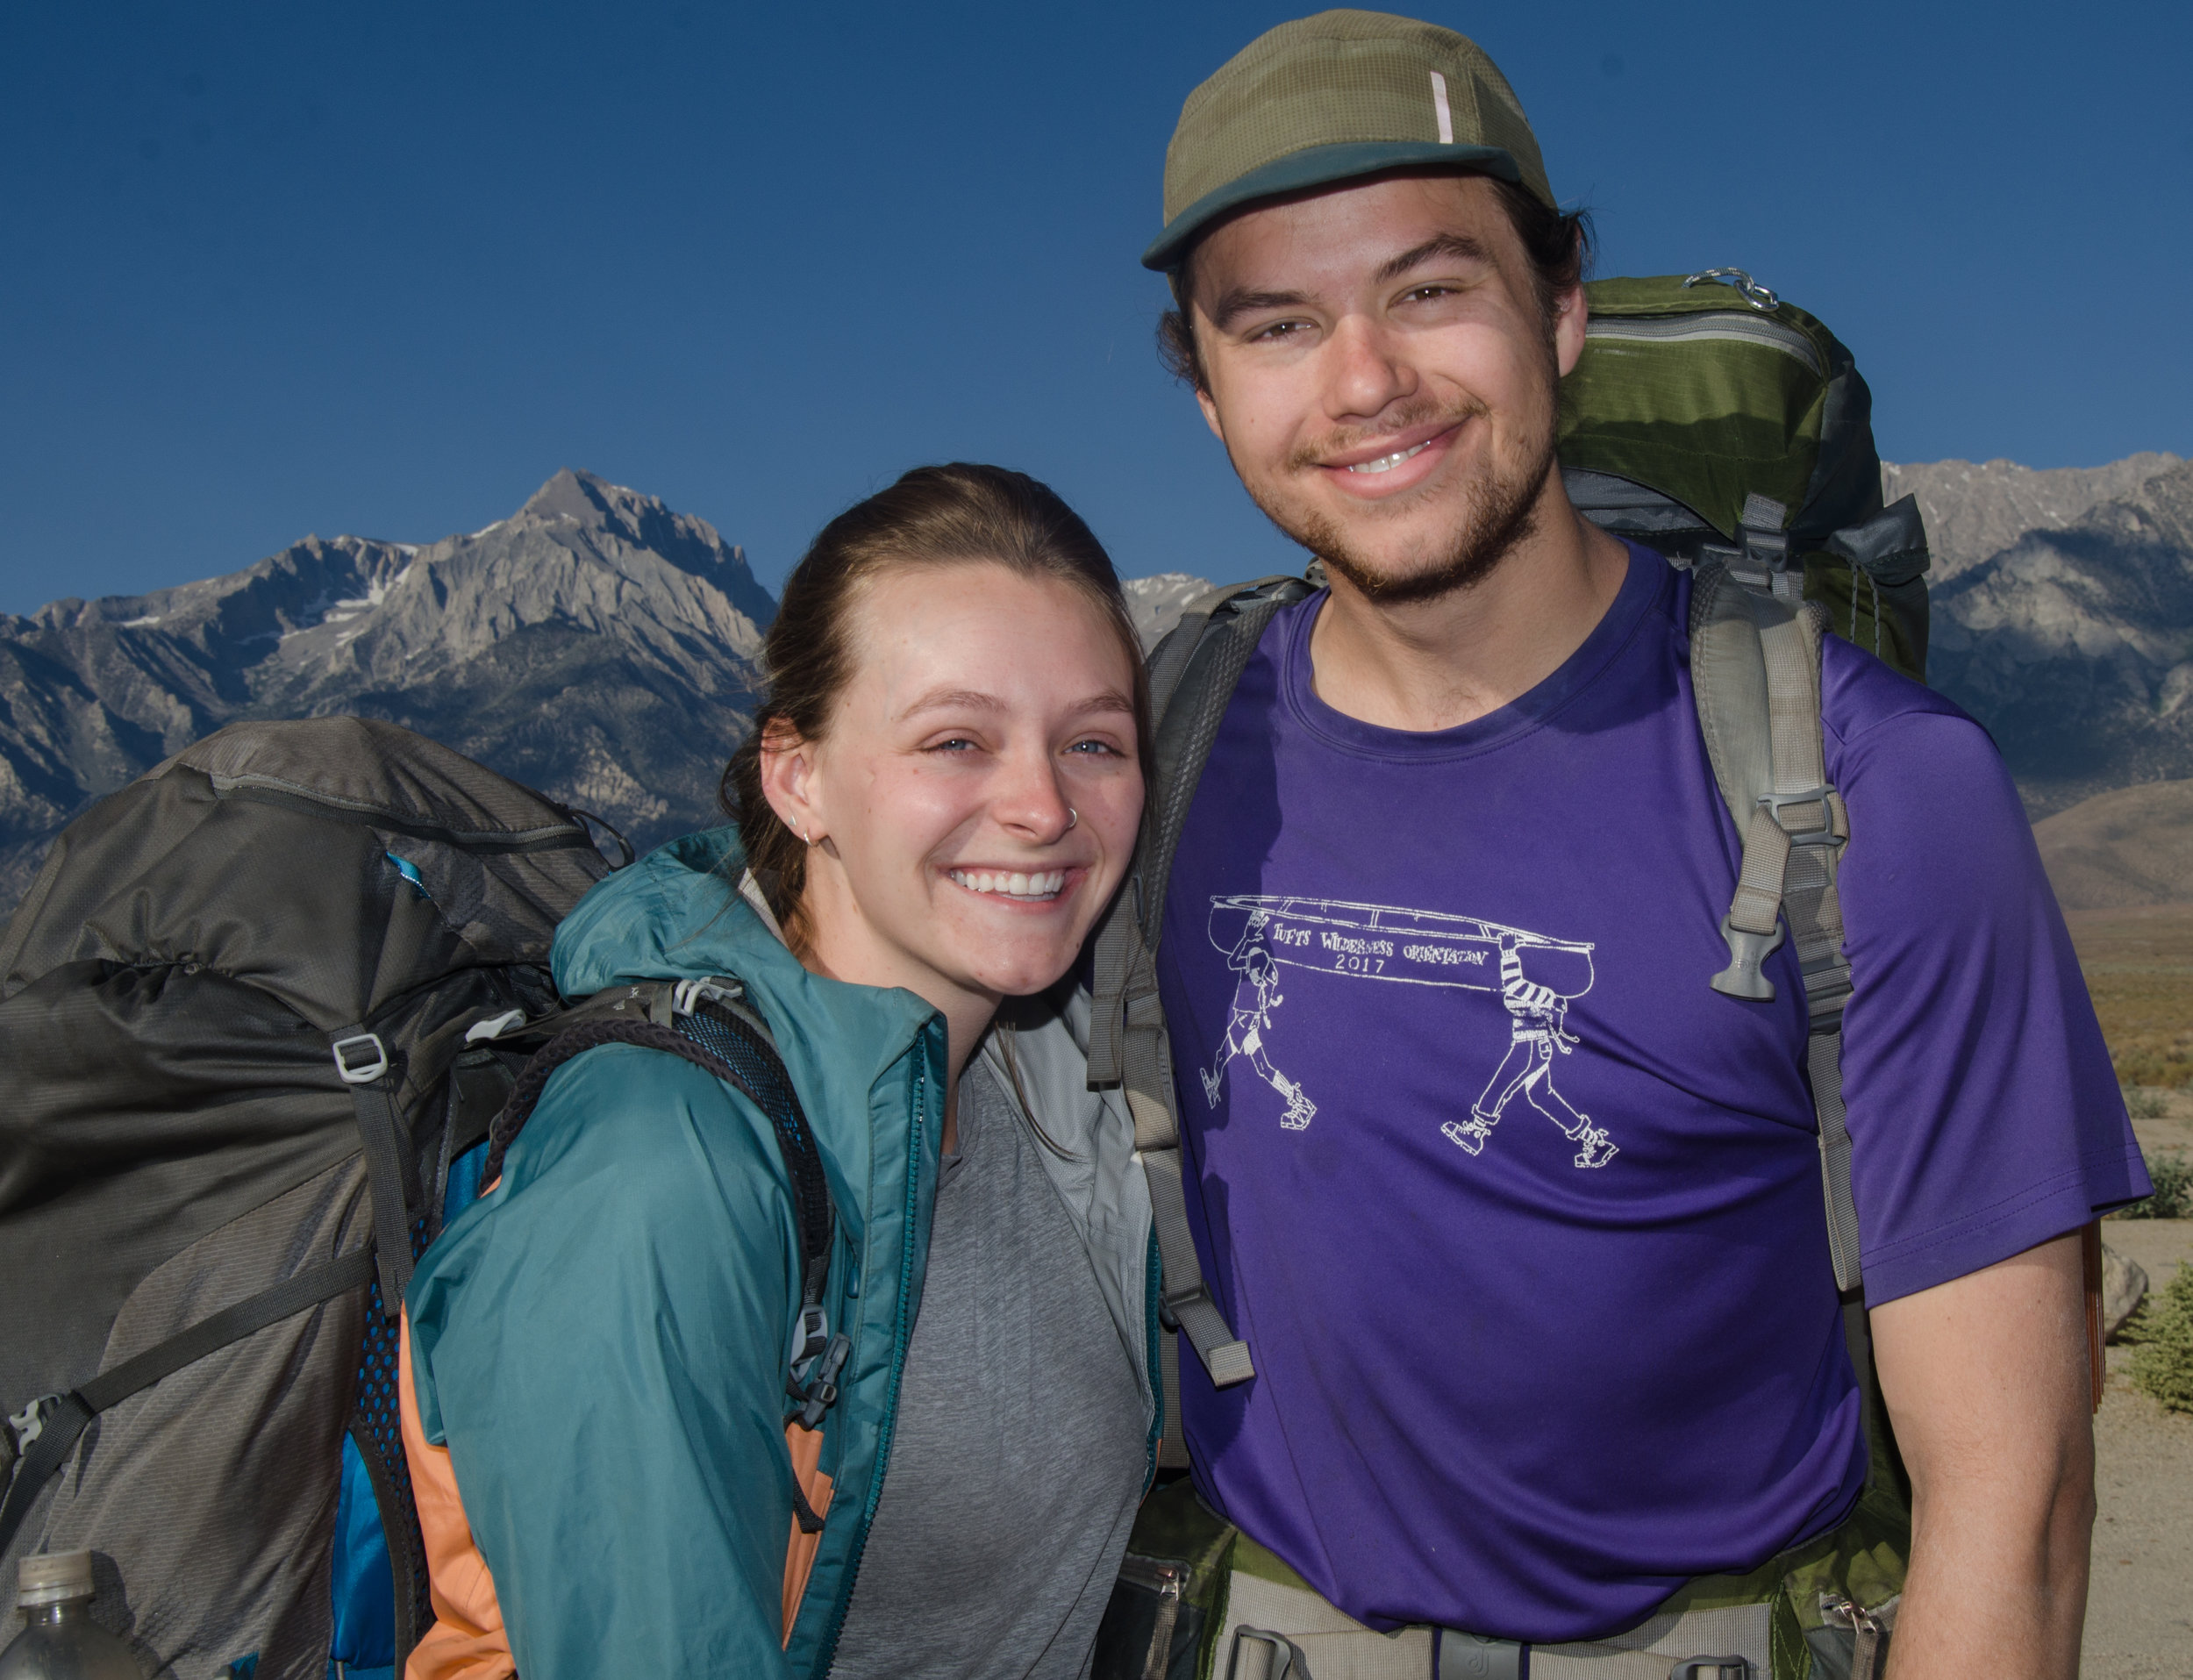 SOBO JMT Hikers Andrew and Grace